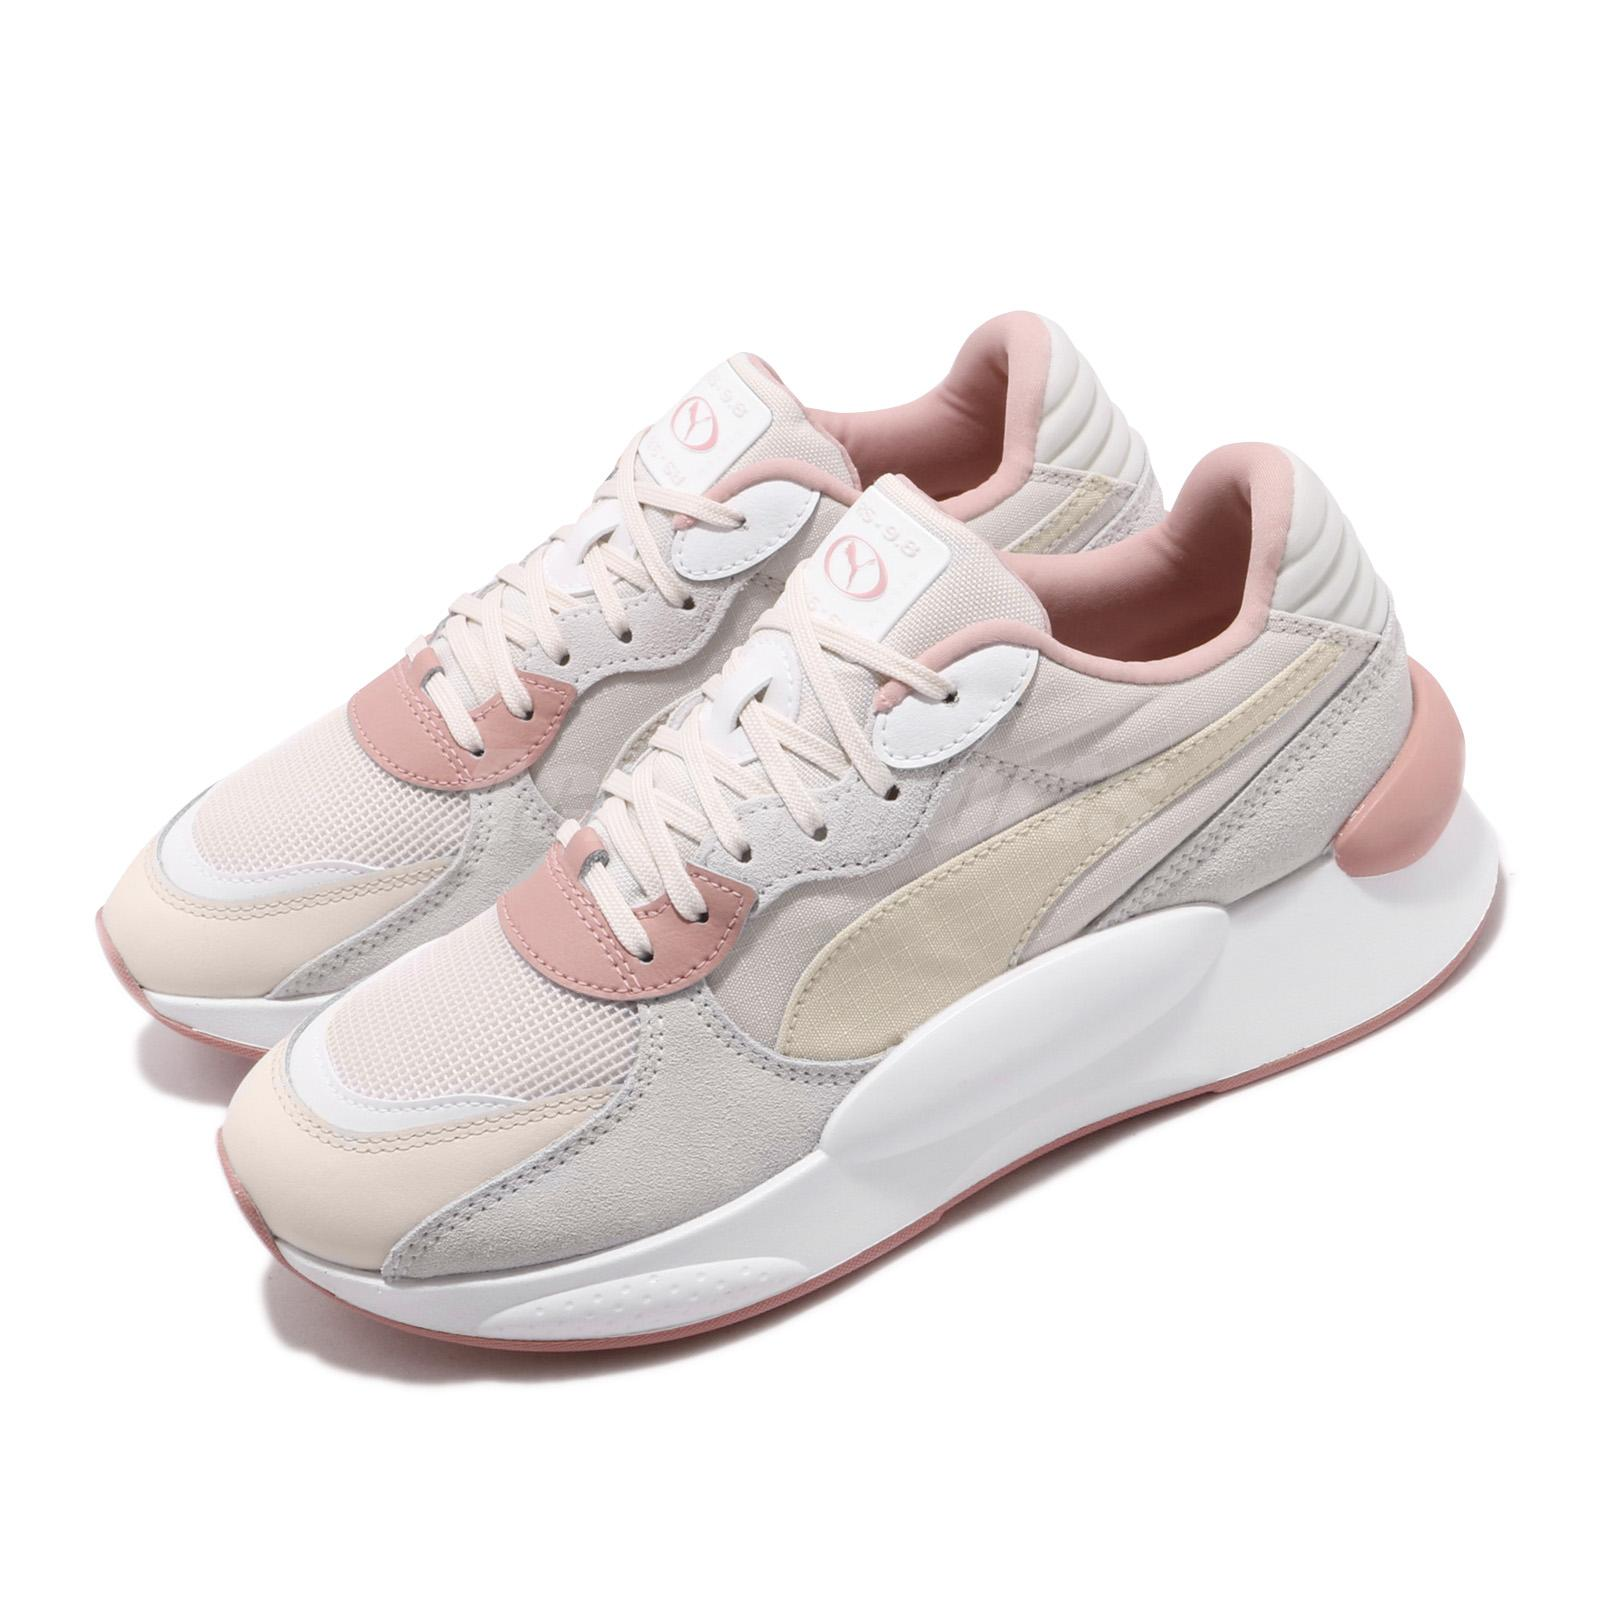 Details about Puma RS 9.8 Space Beige White Pink Suede Womens Lifestyle  Running Shoes 37023005